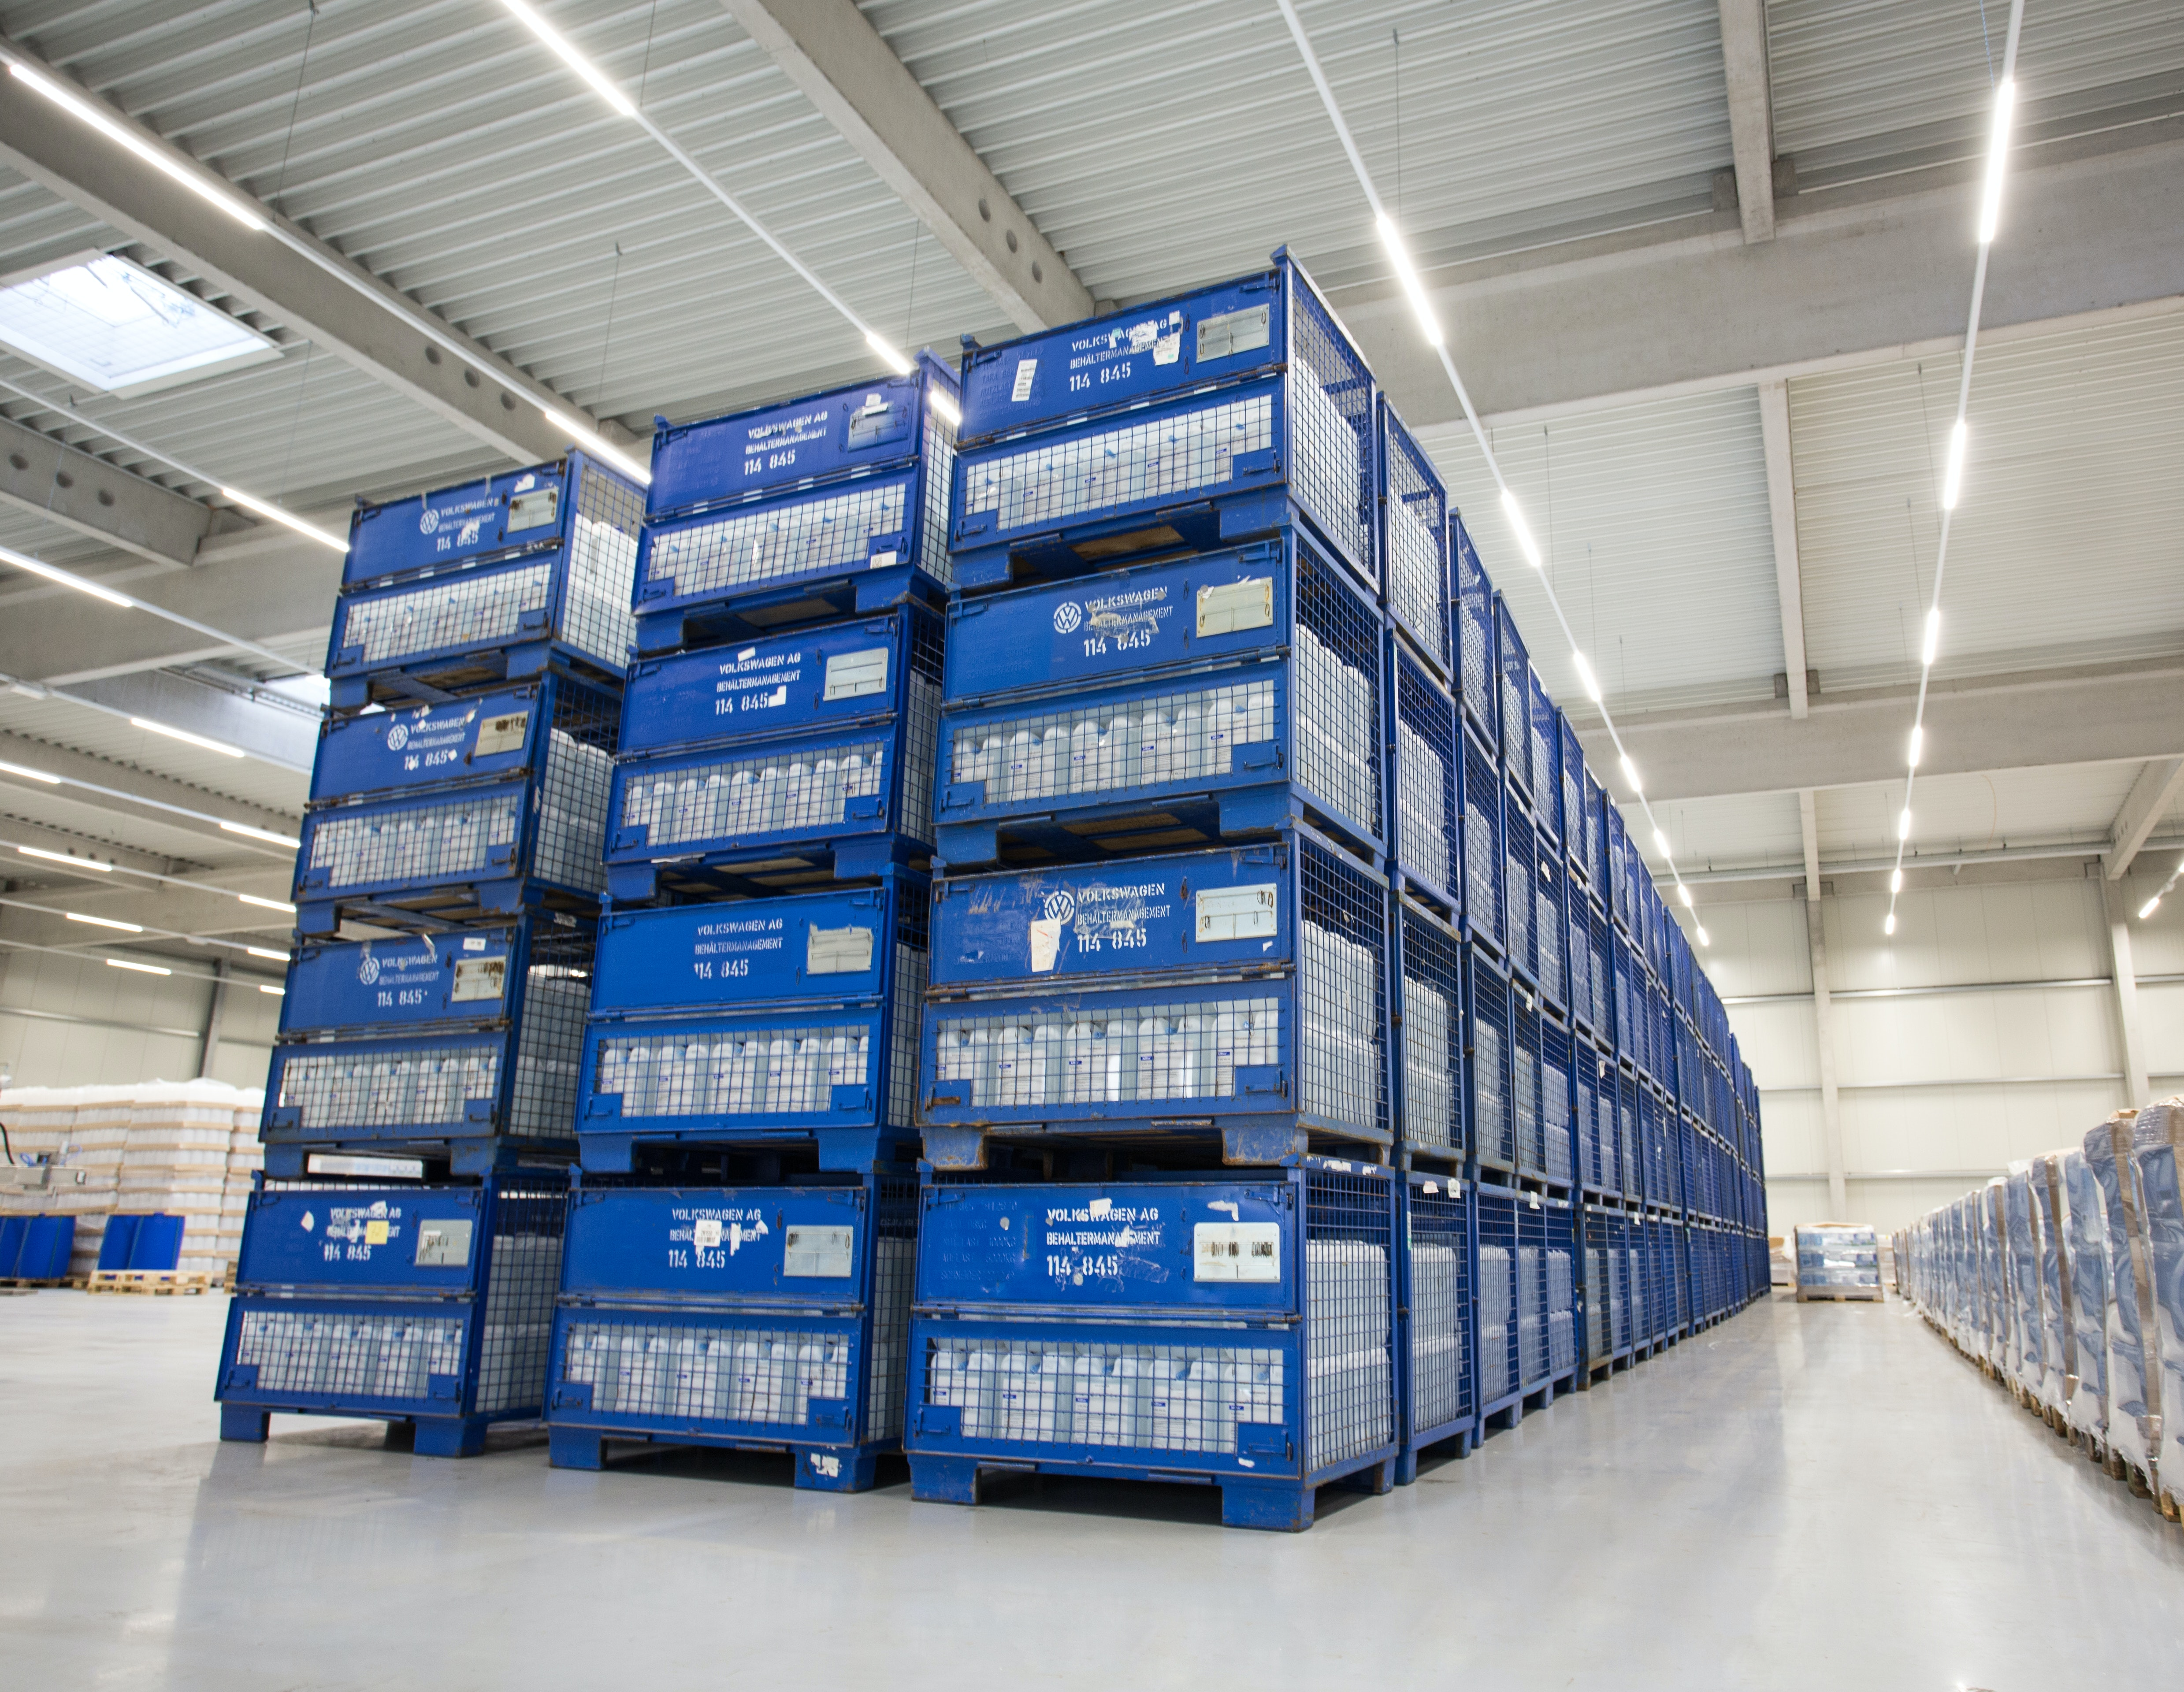 Hamm storage of AdBlue canister